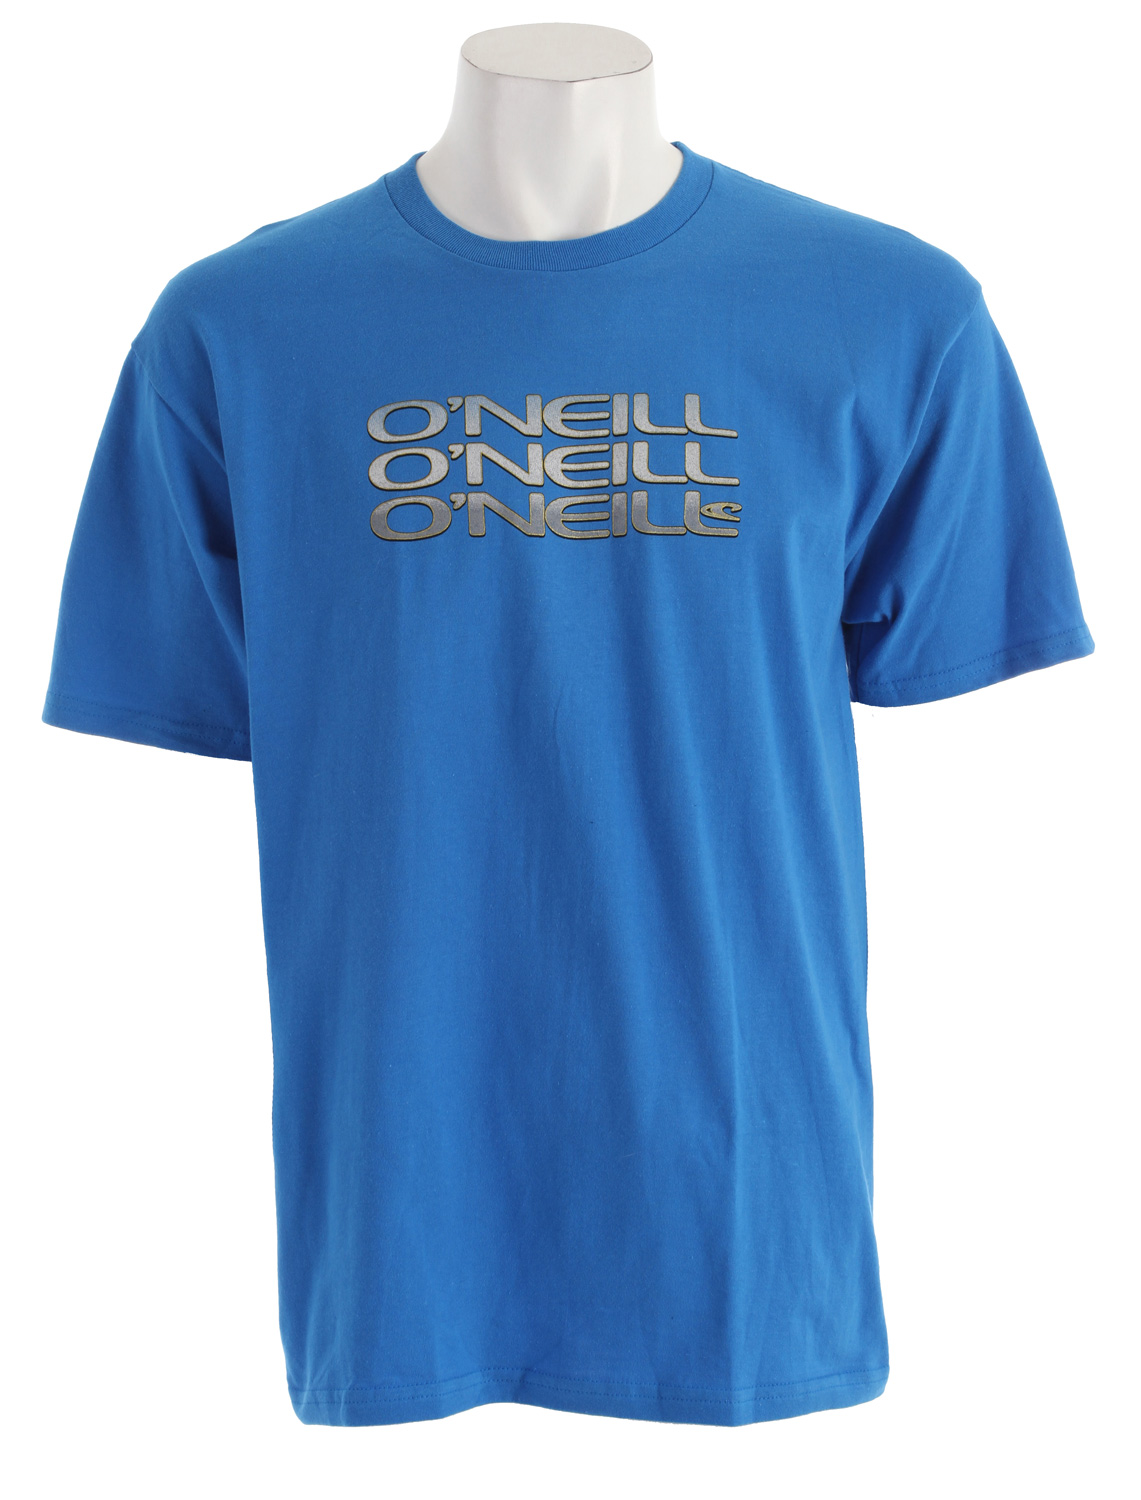 Surf Key Features of The O'Neill Cache T-Shirt: Slim Fit Crew Neck Short Sleeve 100% ringspun cotton - $19.95